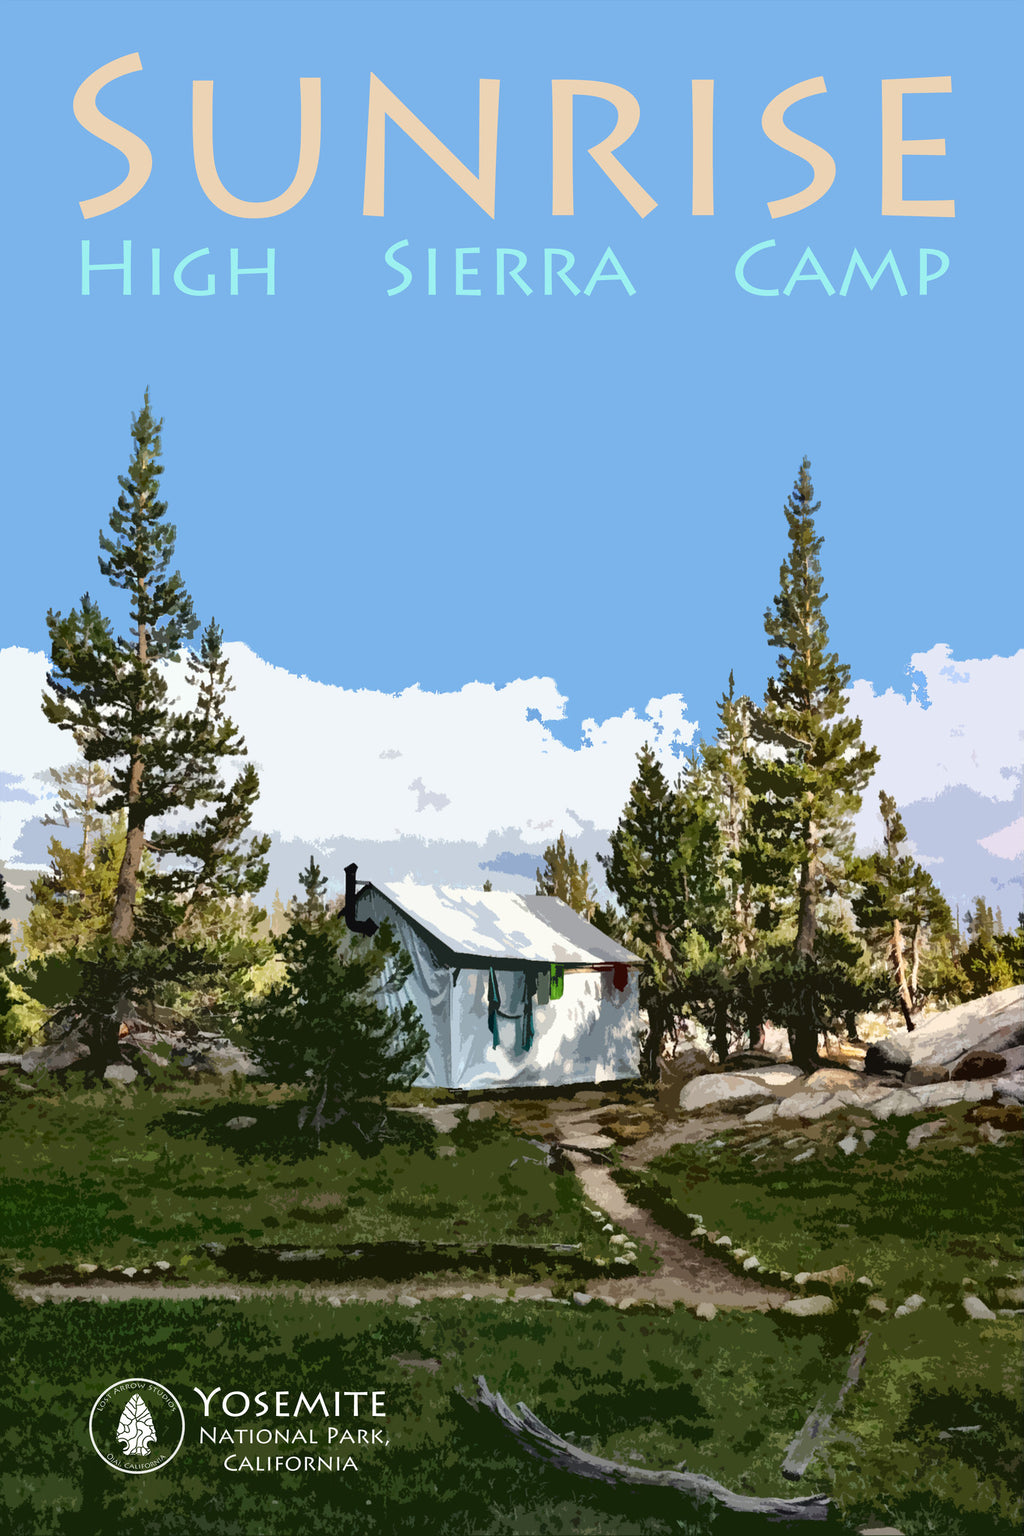 Sunrise High Sierra Camp Poster 12 x 18""